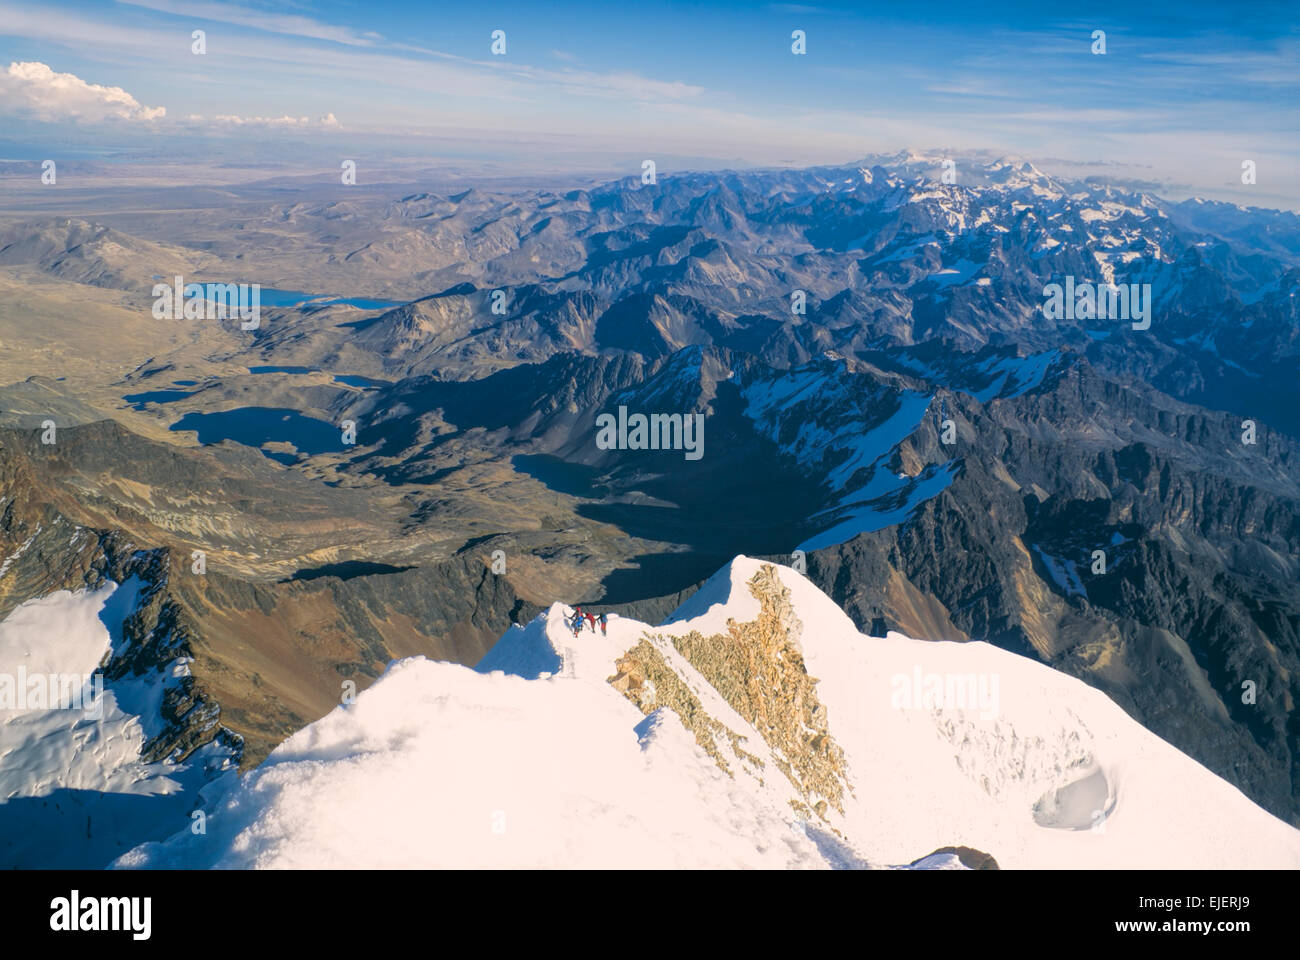 Breathtaking view from the top of Huayna Potosi mountain in Bolivia - Stock Image